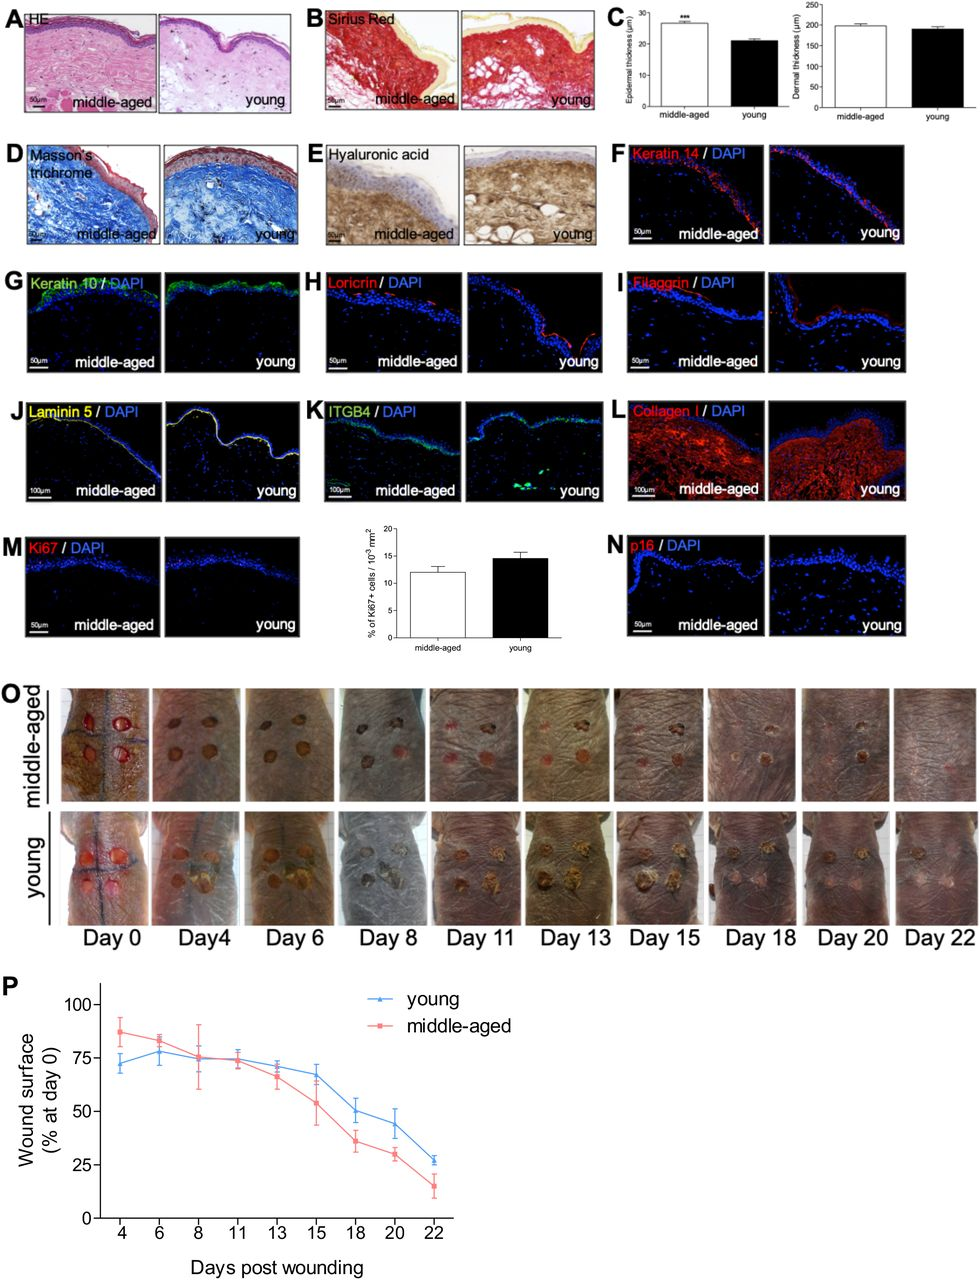 NMR skin histomorphology and wound healing. ( A, B, D ) HE, Sirius Red and Masson's Trichrome staining photomicrographs on sections of middle-aged (A) and young (Y) NMR back skin. ( C ) Histograms showing the epidermal and dermal thickness (μm) of middle-aged and young NMR back skin. ***p≤0.0001 in Mann-Whitney U test. n=4 animals per group. ( E-N ) Hyaluronic acid, Keratin 14, Keratin 10, Loricrin, Filaggrin, Laminin 5, ITGB4, Collagen I, Ki67, and p16 photomicrographs on sections of middle-aged and young NMR back skin. Cells were stained with either Alexa 546 or Alexa 488 fluorochromes. For hyaluronic acid, cells were stained with <t>3,3'-diaminobenzidine.</t> Negative controls were performed in parallel with the samples substituting the primary antibody with the equivalent isotype. Histogram showed the number of Ki67+ cells per surface in both age group. Scale bar = 50 or 100 μm. *represents differences between A and Y animals. Bars: SEM. ***p≤0.0001 in Mann-Whitney U test. n=4 animals per group. ( O ) Photomicrographs of back skin wounds for middle-aged and young animals from day 0 to day 22 post wounding. ( P ) Wound closure rate (% of wound surface at day 0) from day 4 to day 22 post wounding. No statistical difference was found the 2 groups using Mann-Whitney U test. n=4 animals per group.